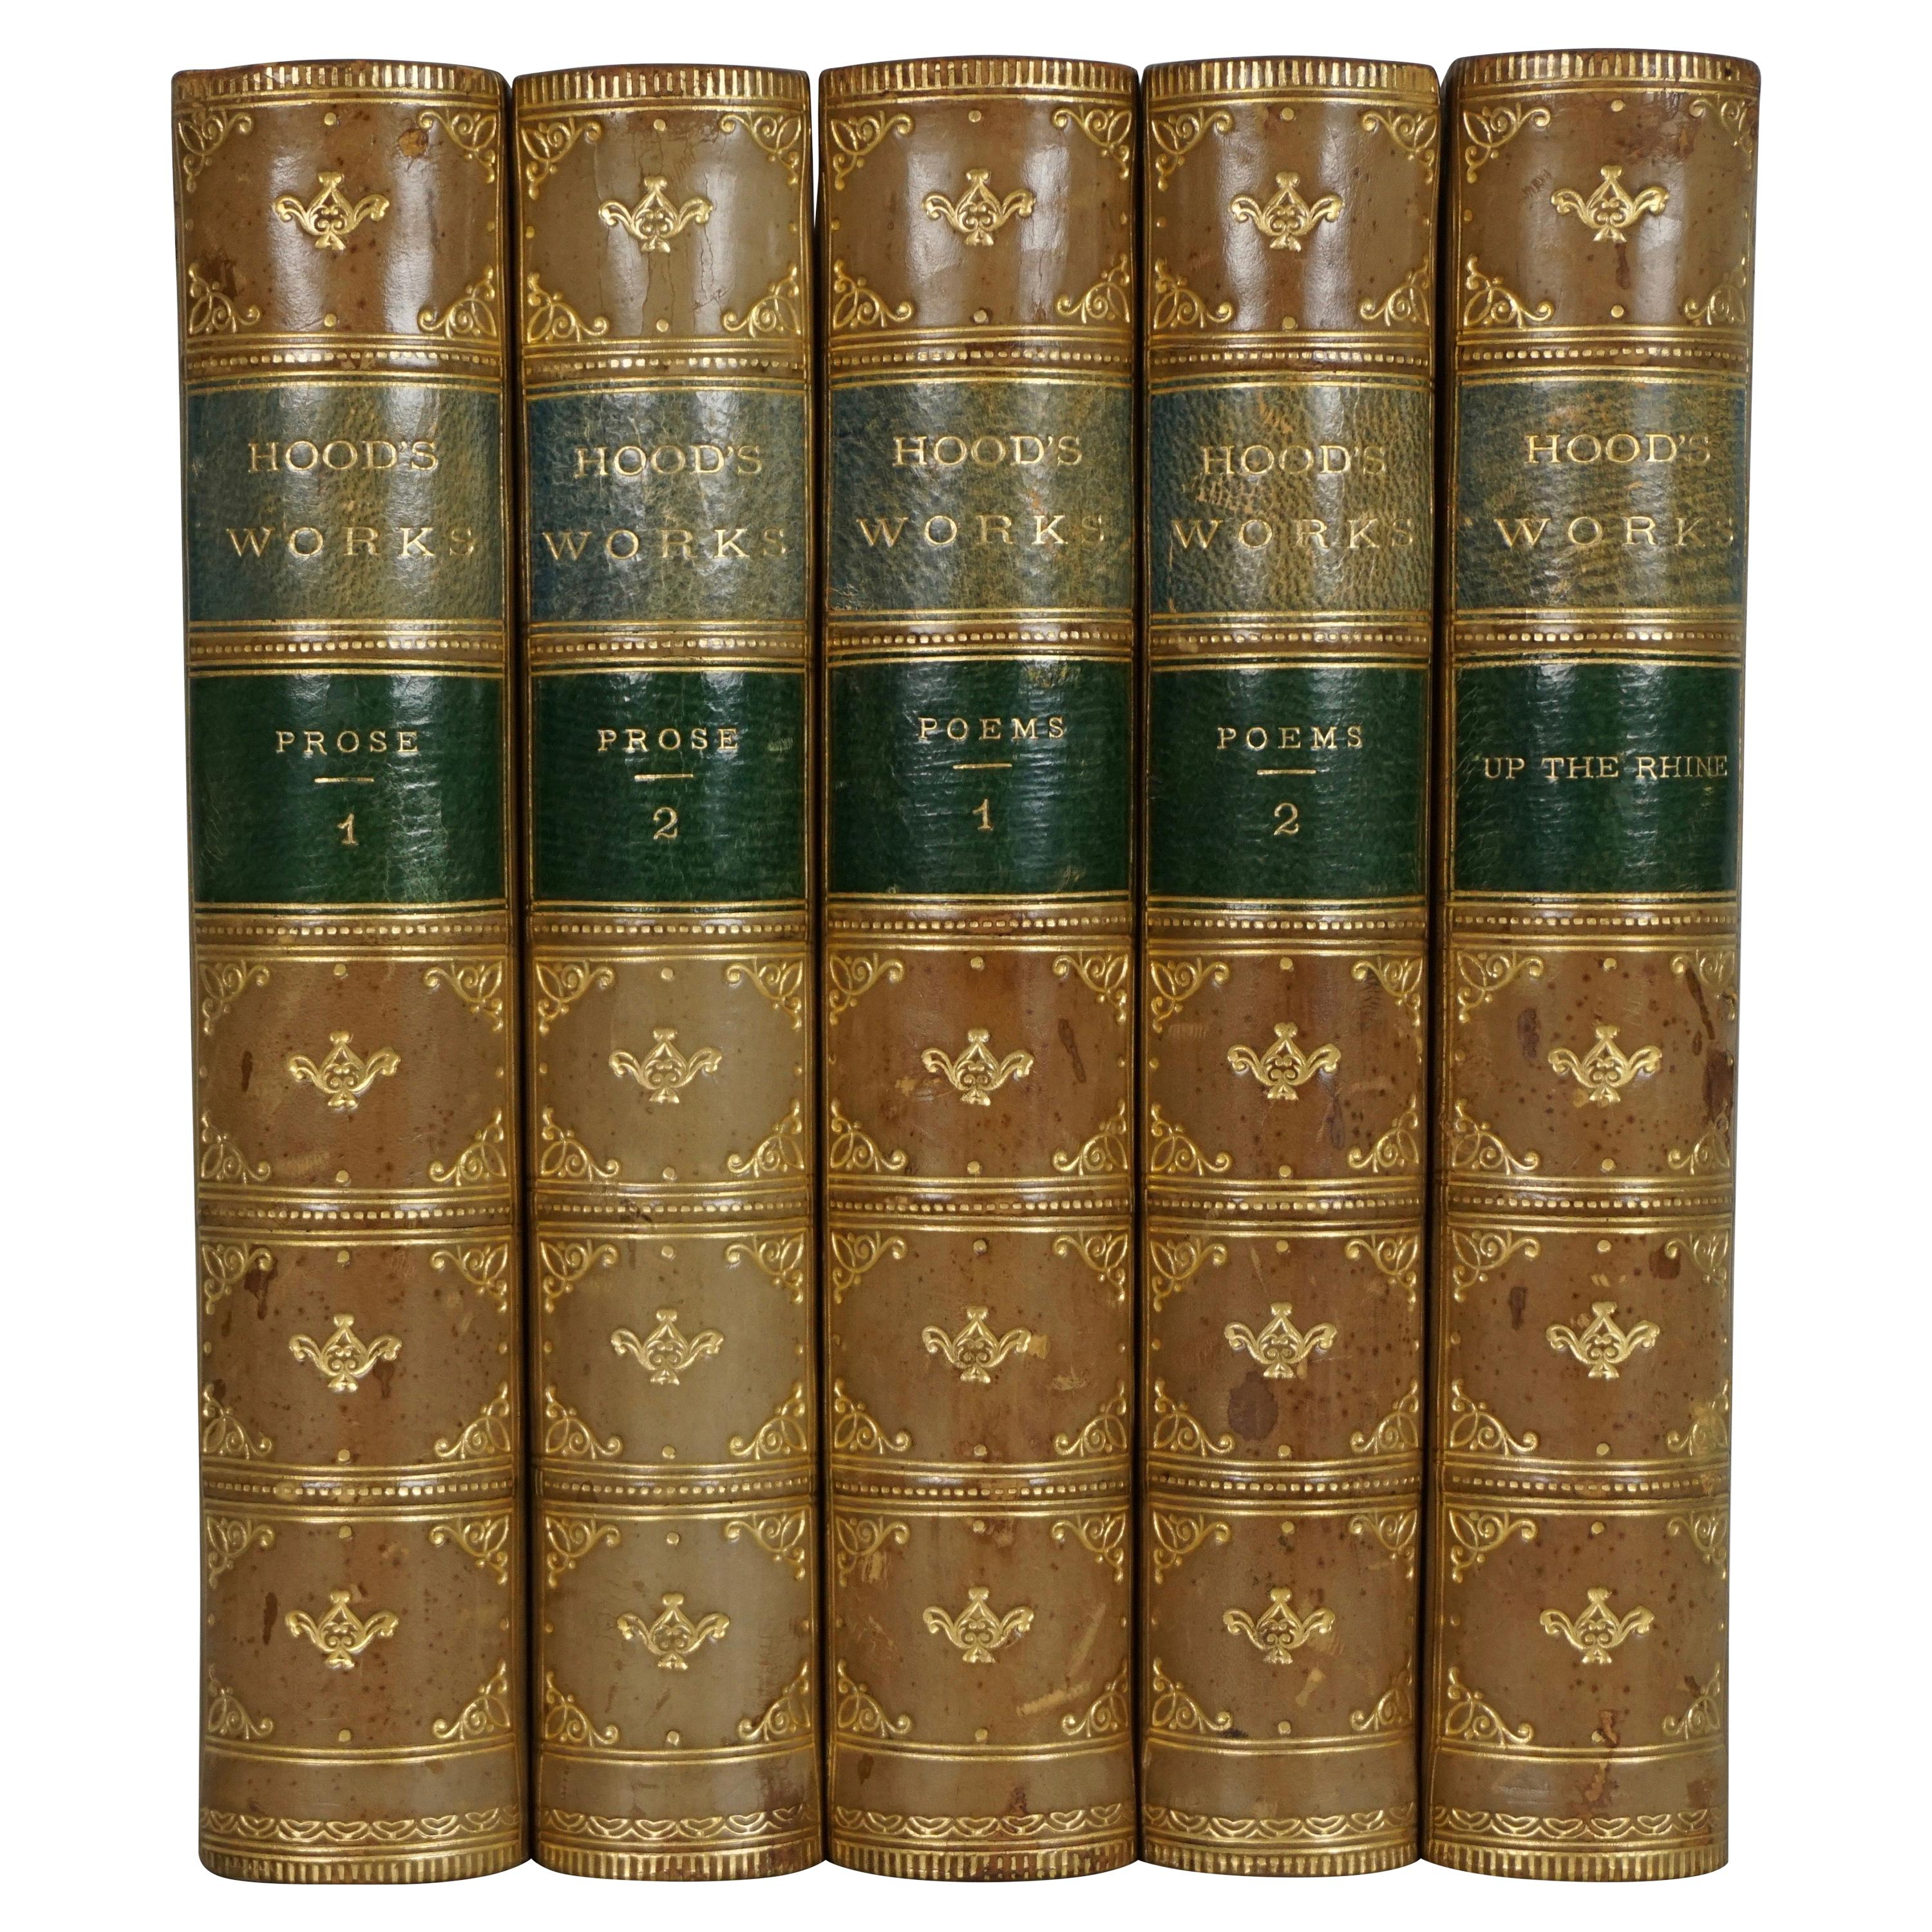 Selected Poems and Prose by Thomas Hood in 5 Leather Bound Volumes